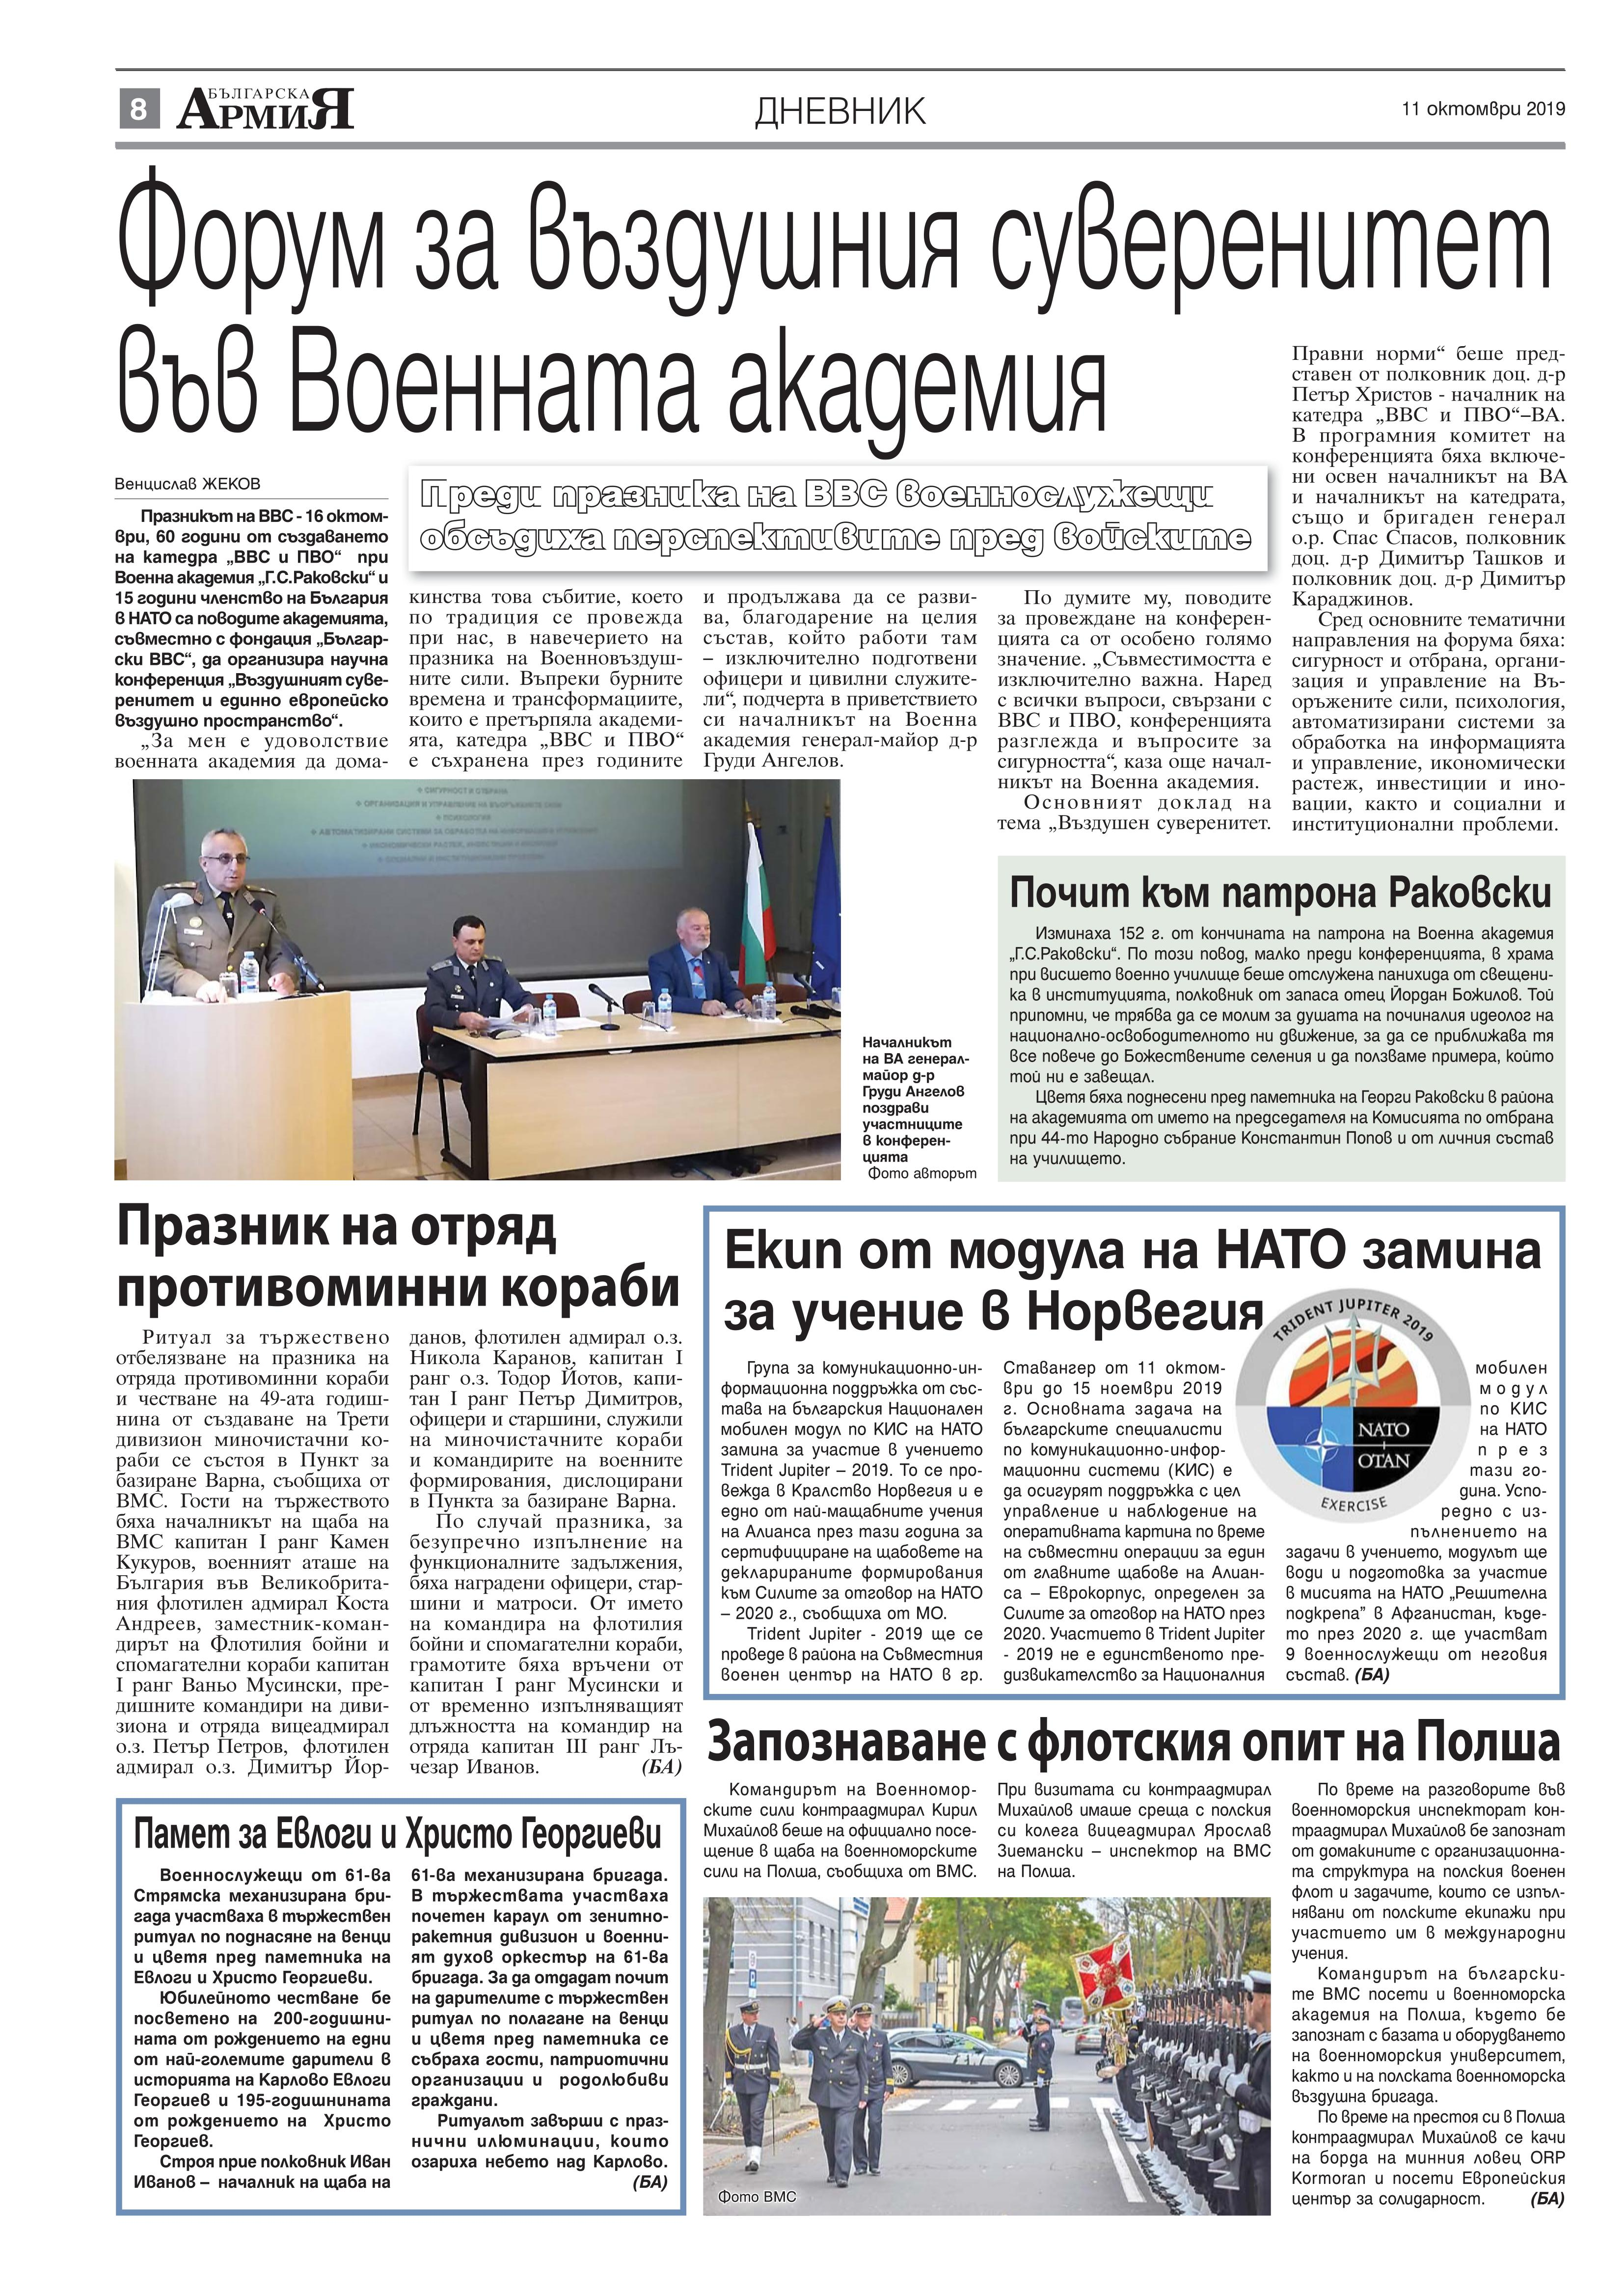 https://www.armymedia.bg/wp-content/uploads/2015/06/08.page1_-108.jpg